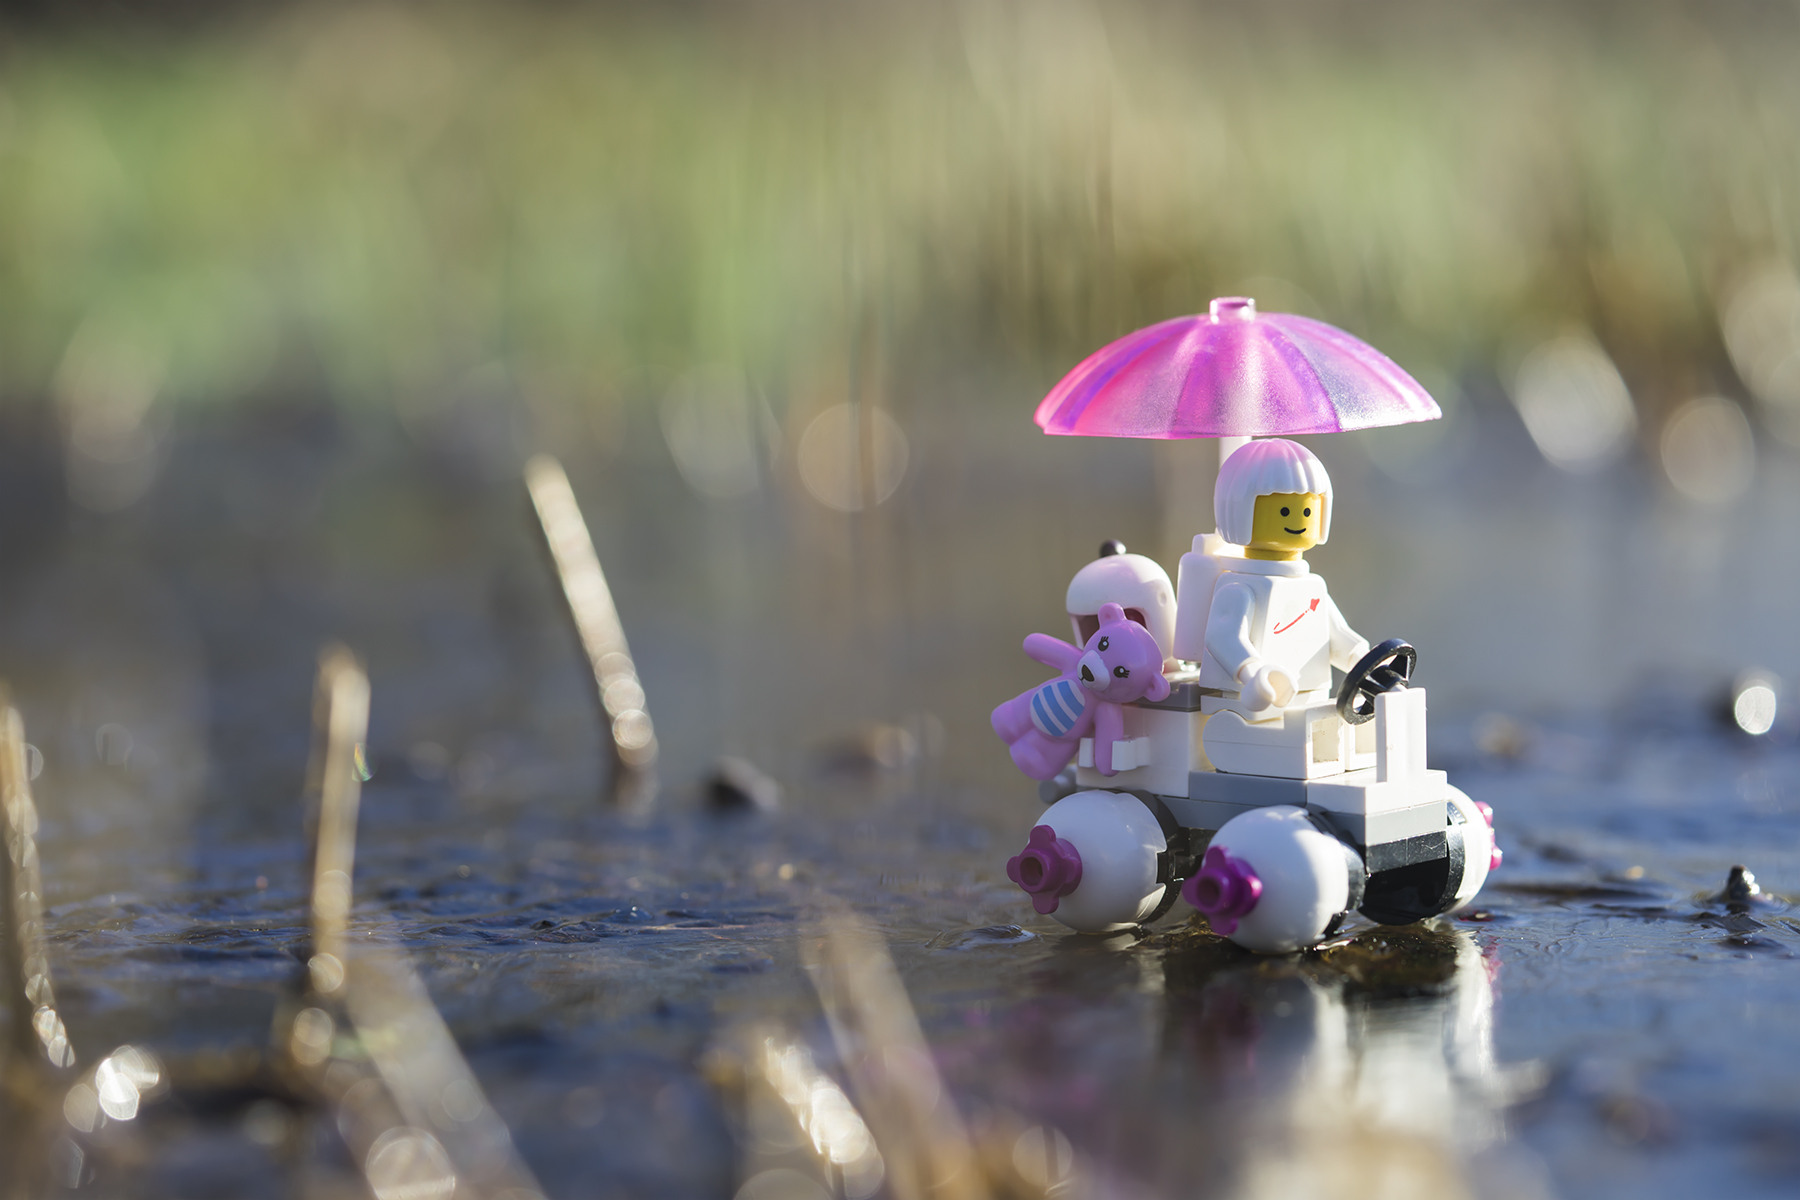 Lego space explorer with pink umbrella taken with a Sony 90mm macro lens by Shelly Corbett